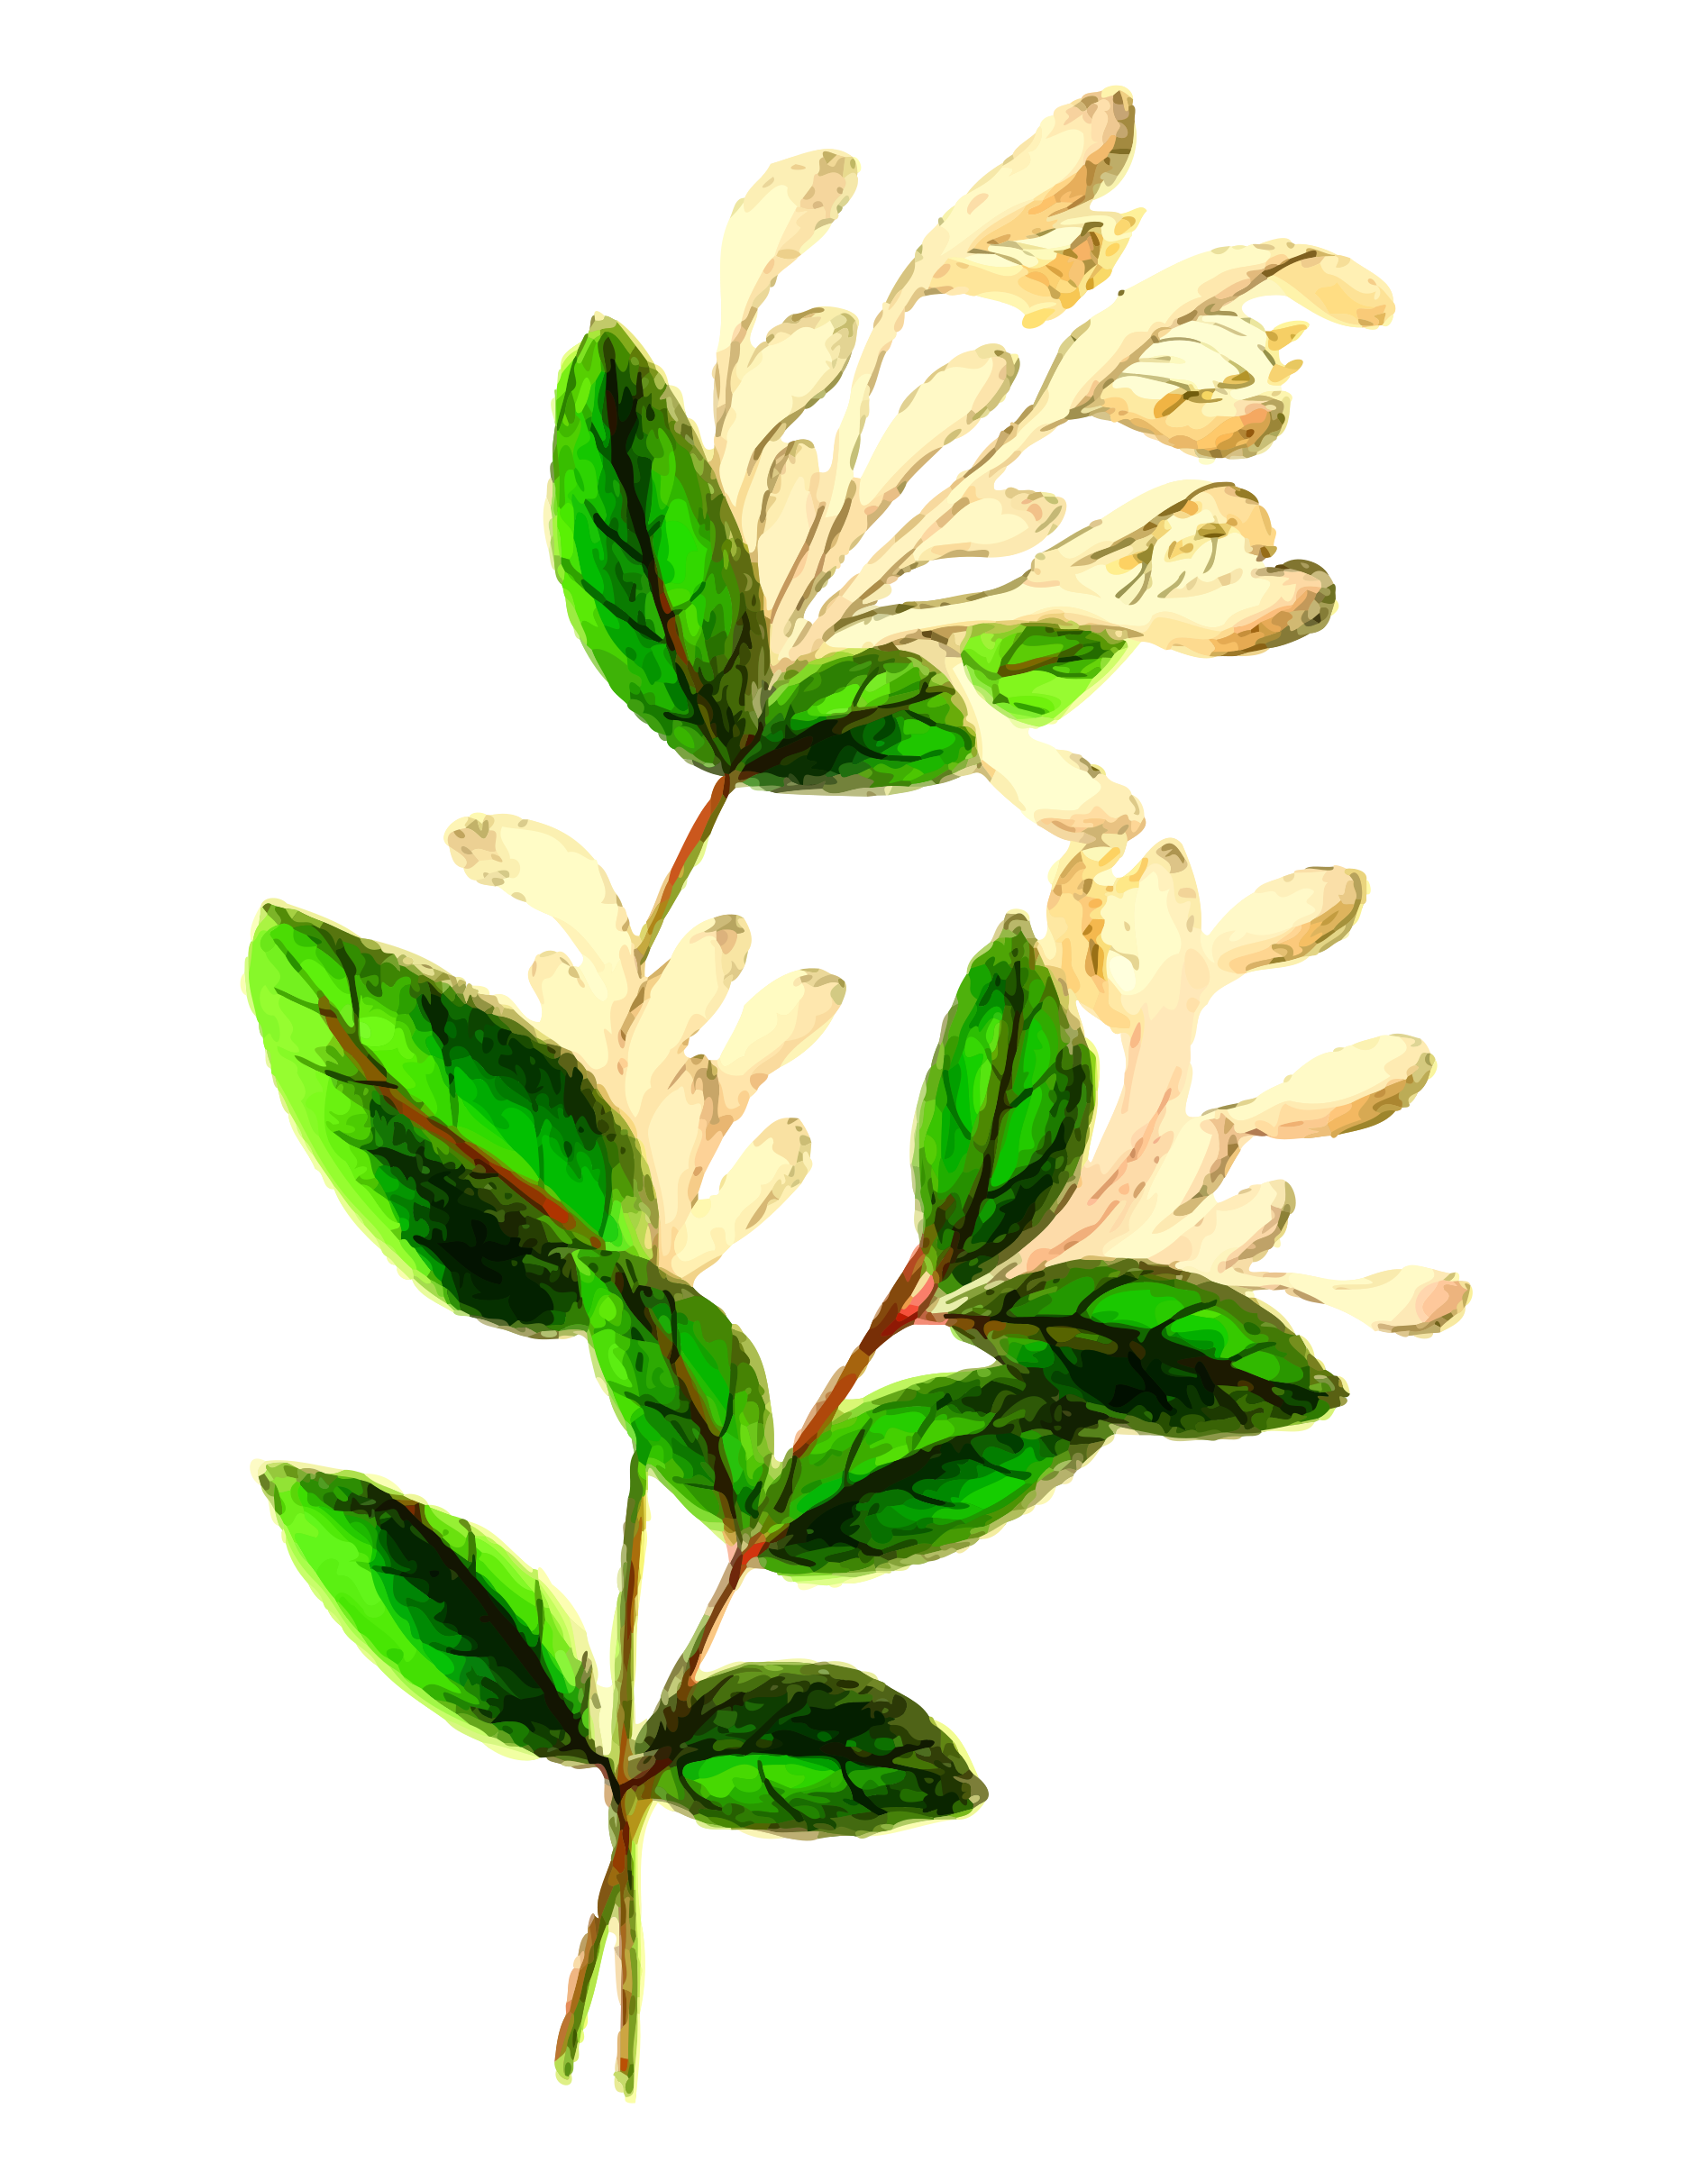 Honeysuckle by Firkin